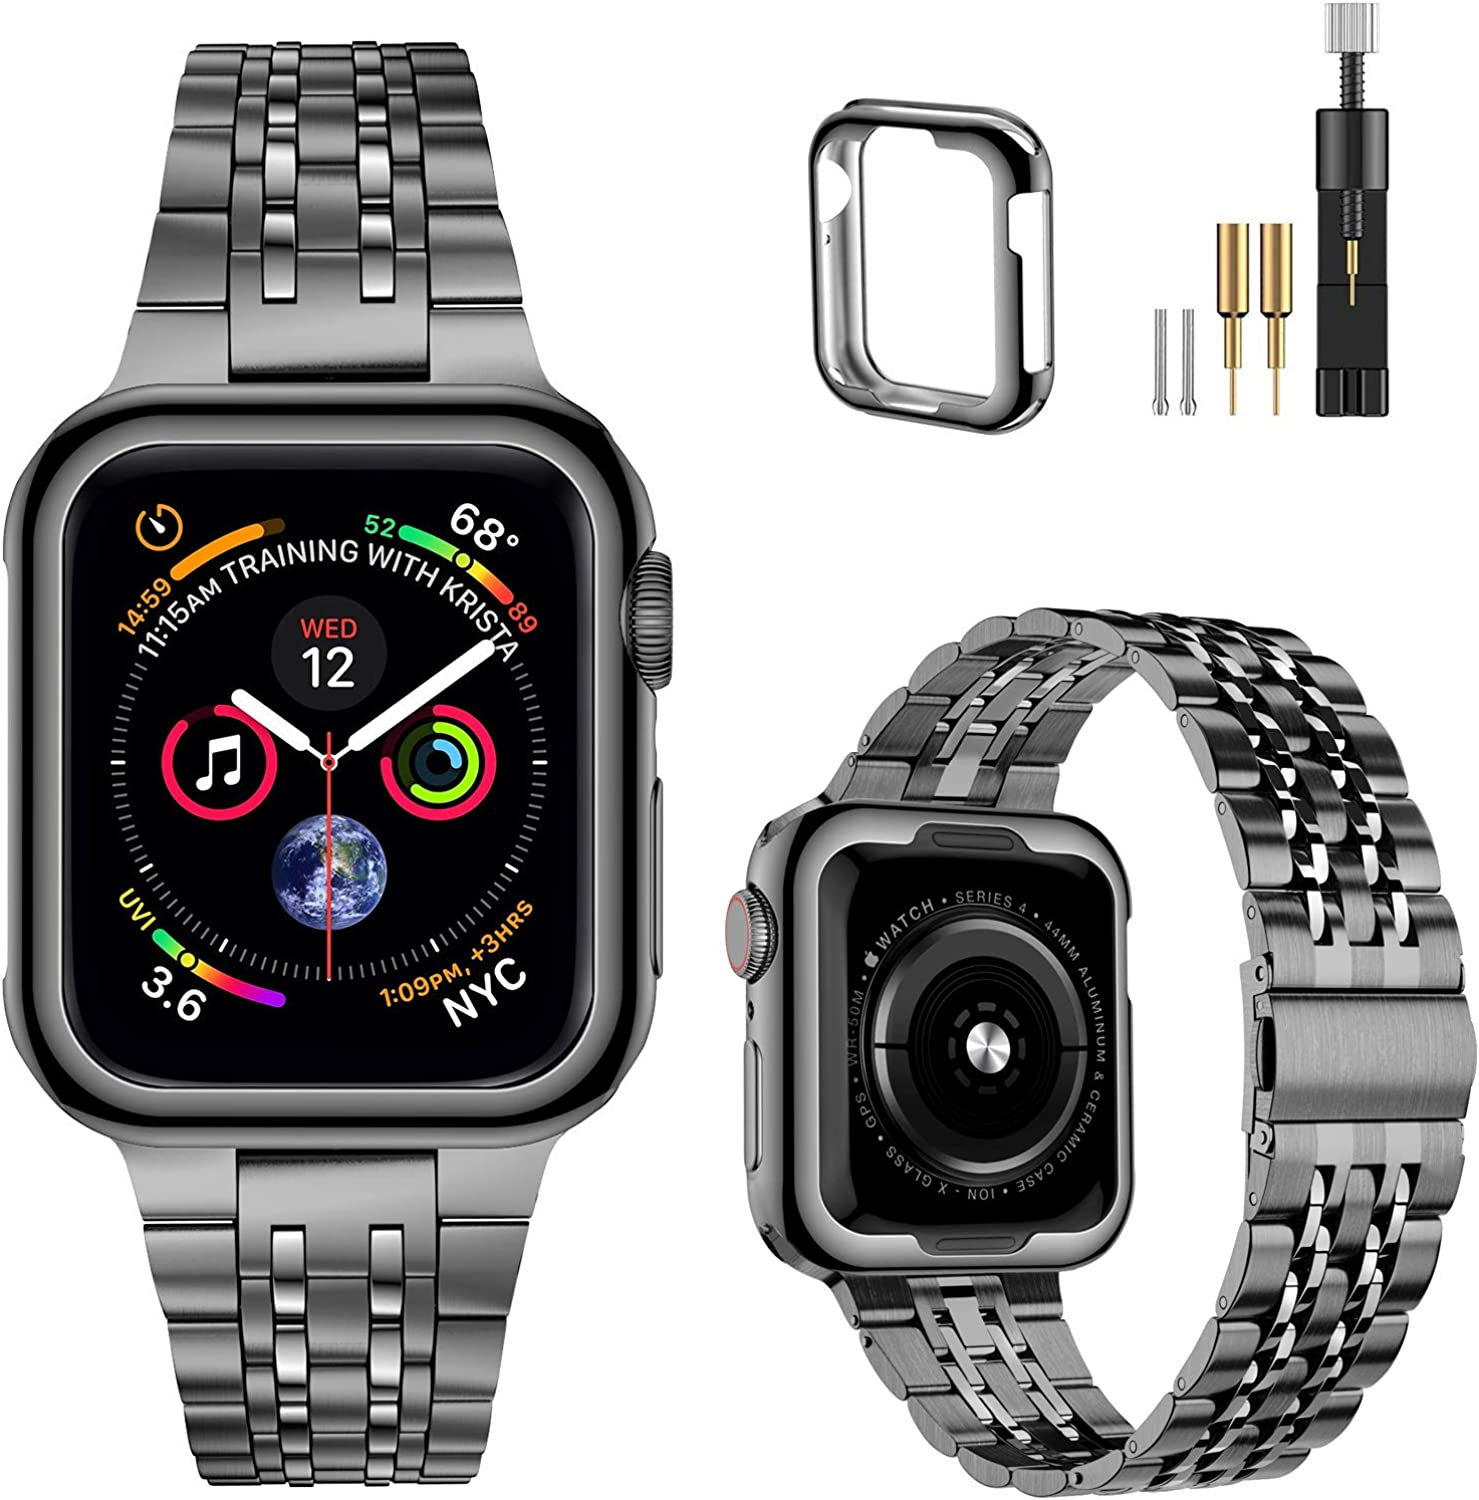 MioHHR Upgraded Version Metal Bands Compatible with Apple Watch band 38/ 40/ 42/ 44mm, Solid Stainless Steel Replacement Wristbands Strap for iWatch SE Series 6/5/4/3/2/1